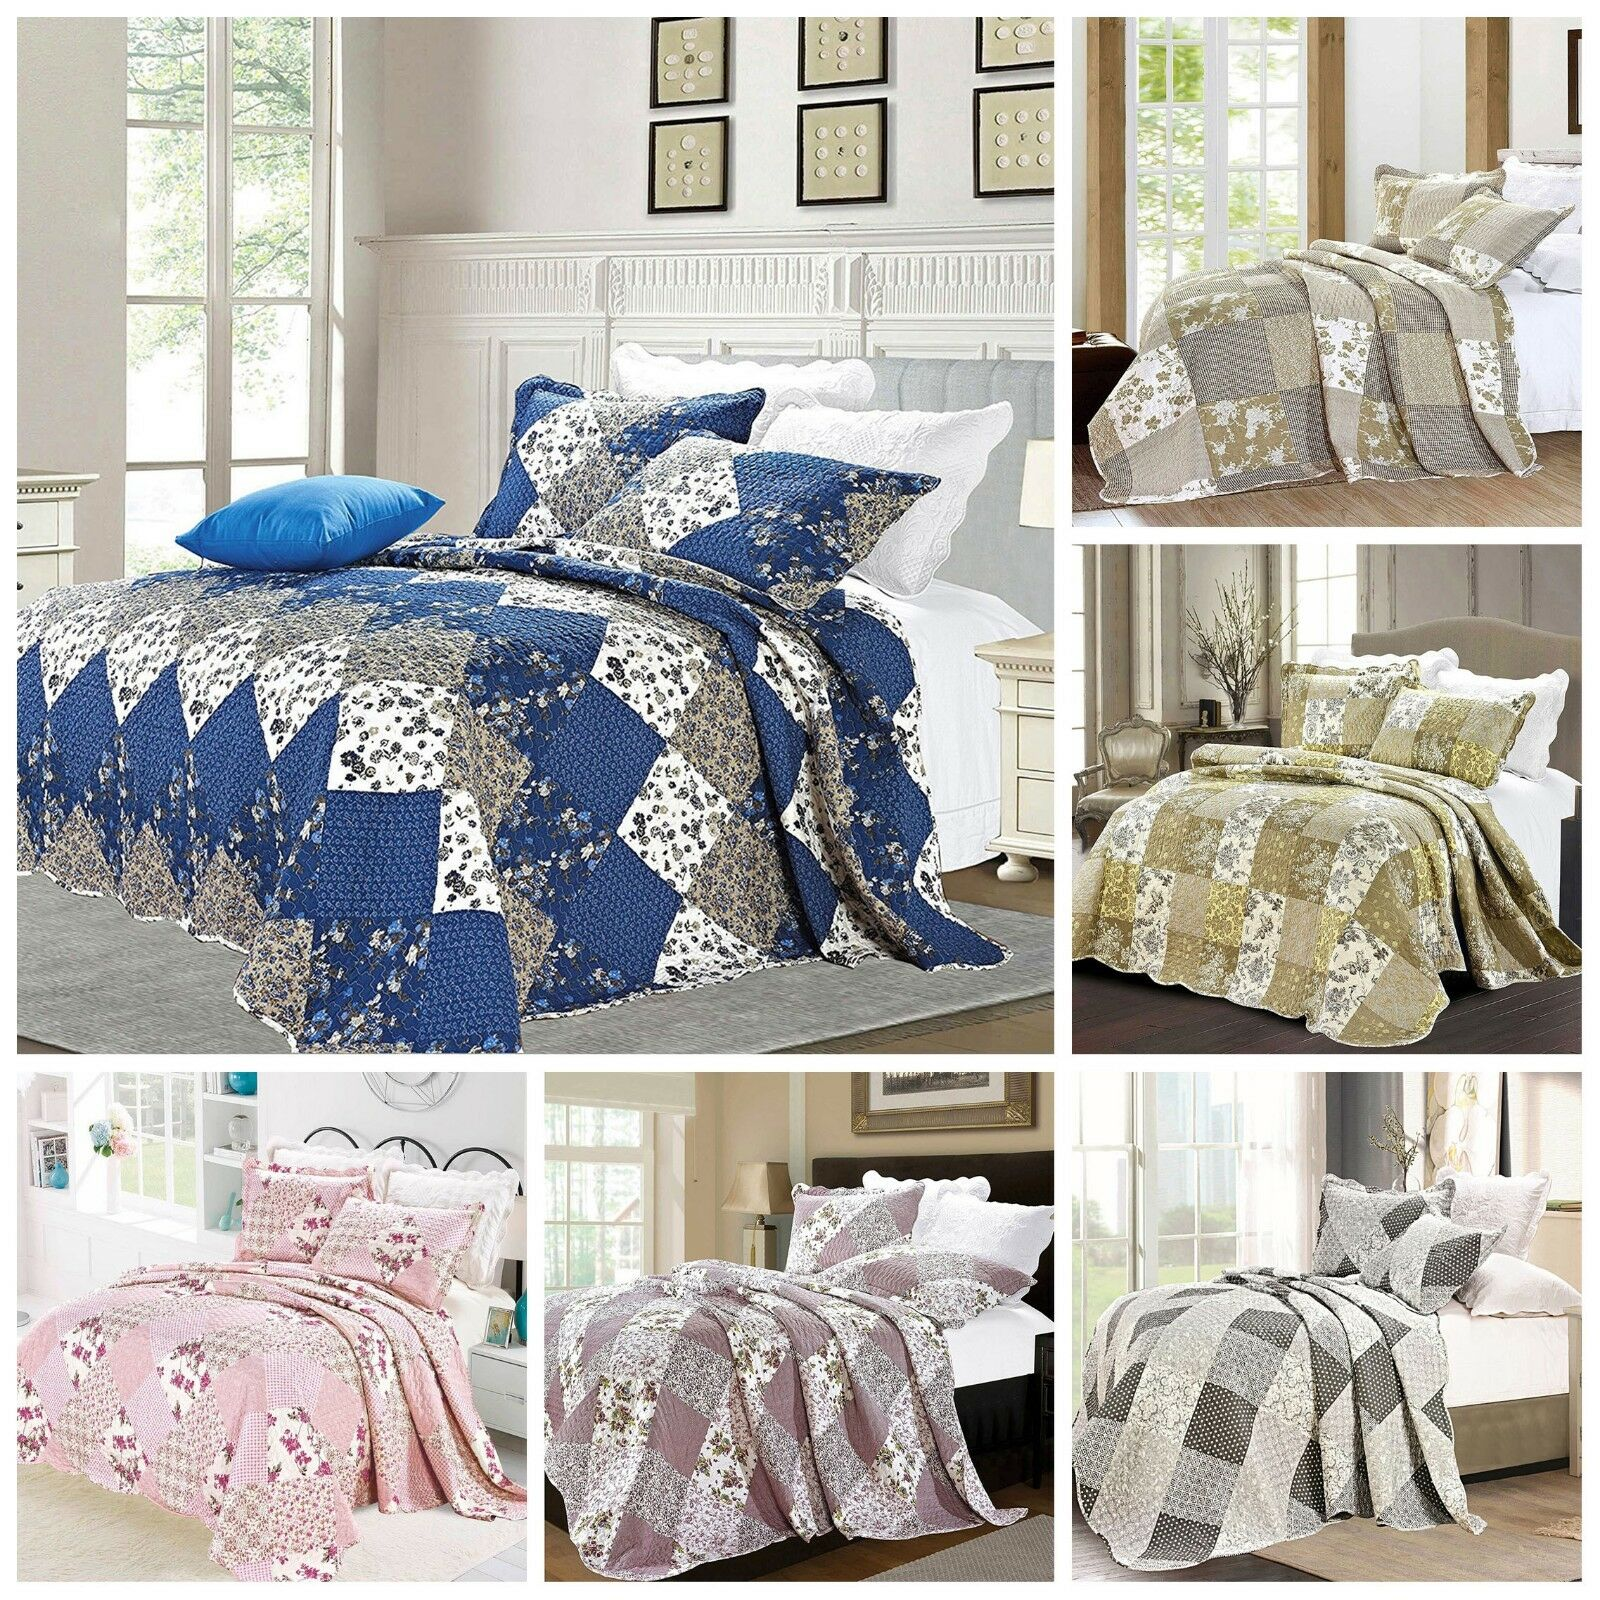 Patchwork Quilted Comfy Bedspread Bedding Set Embroiderot Throw Double King Größe